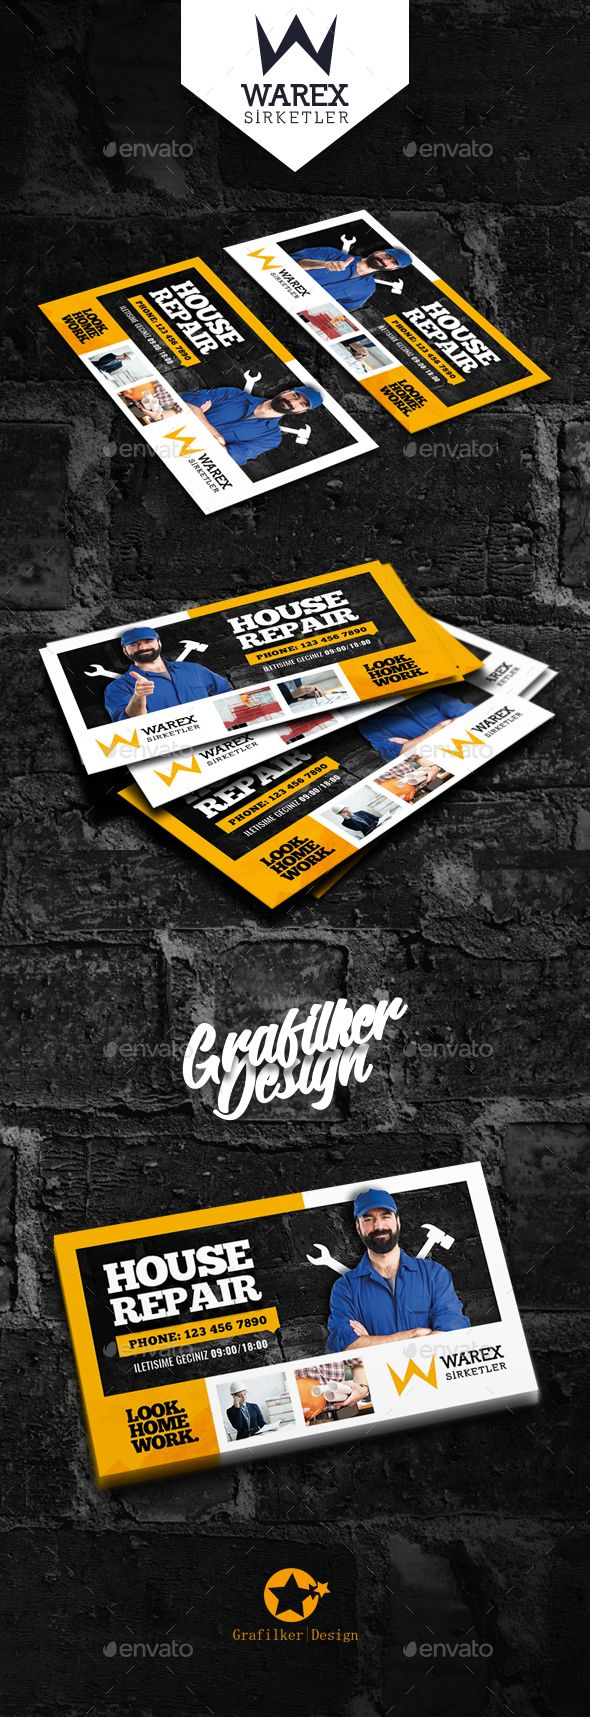 House Repair Business Card Templates | Tarjetas de presentación ...